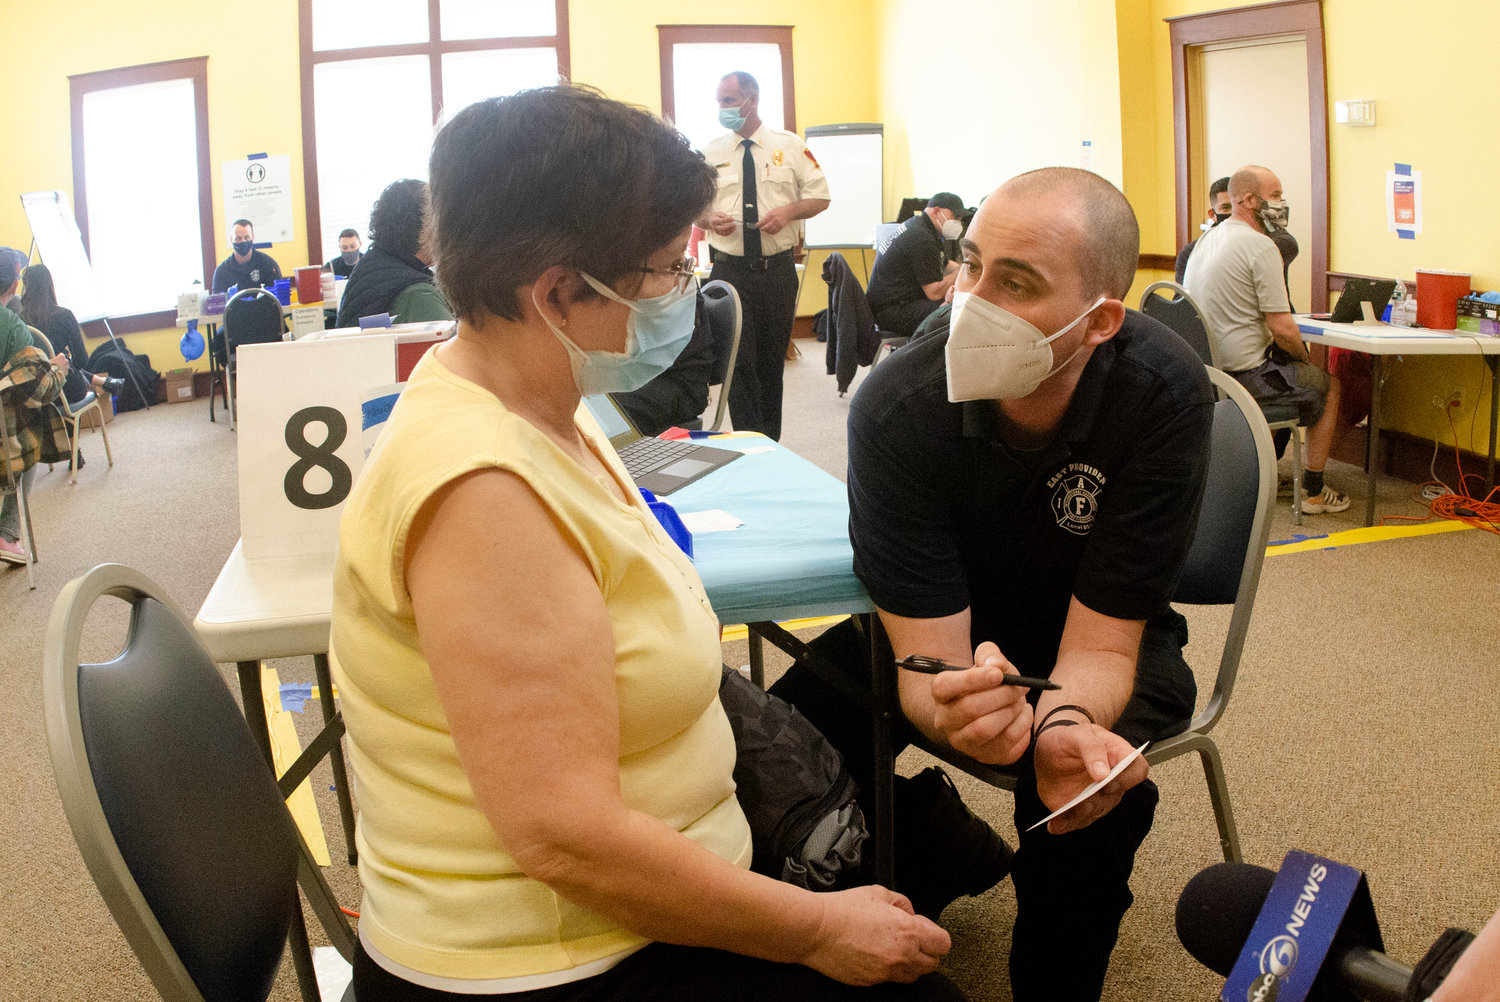 East Providence firefighter Jason Andrade helps a client at the new vaccination pod.